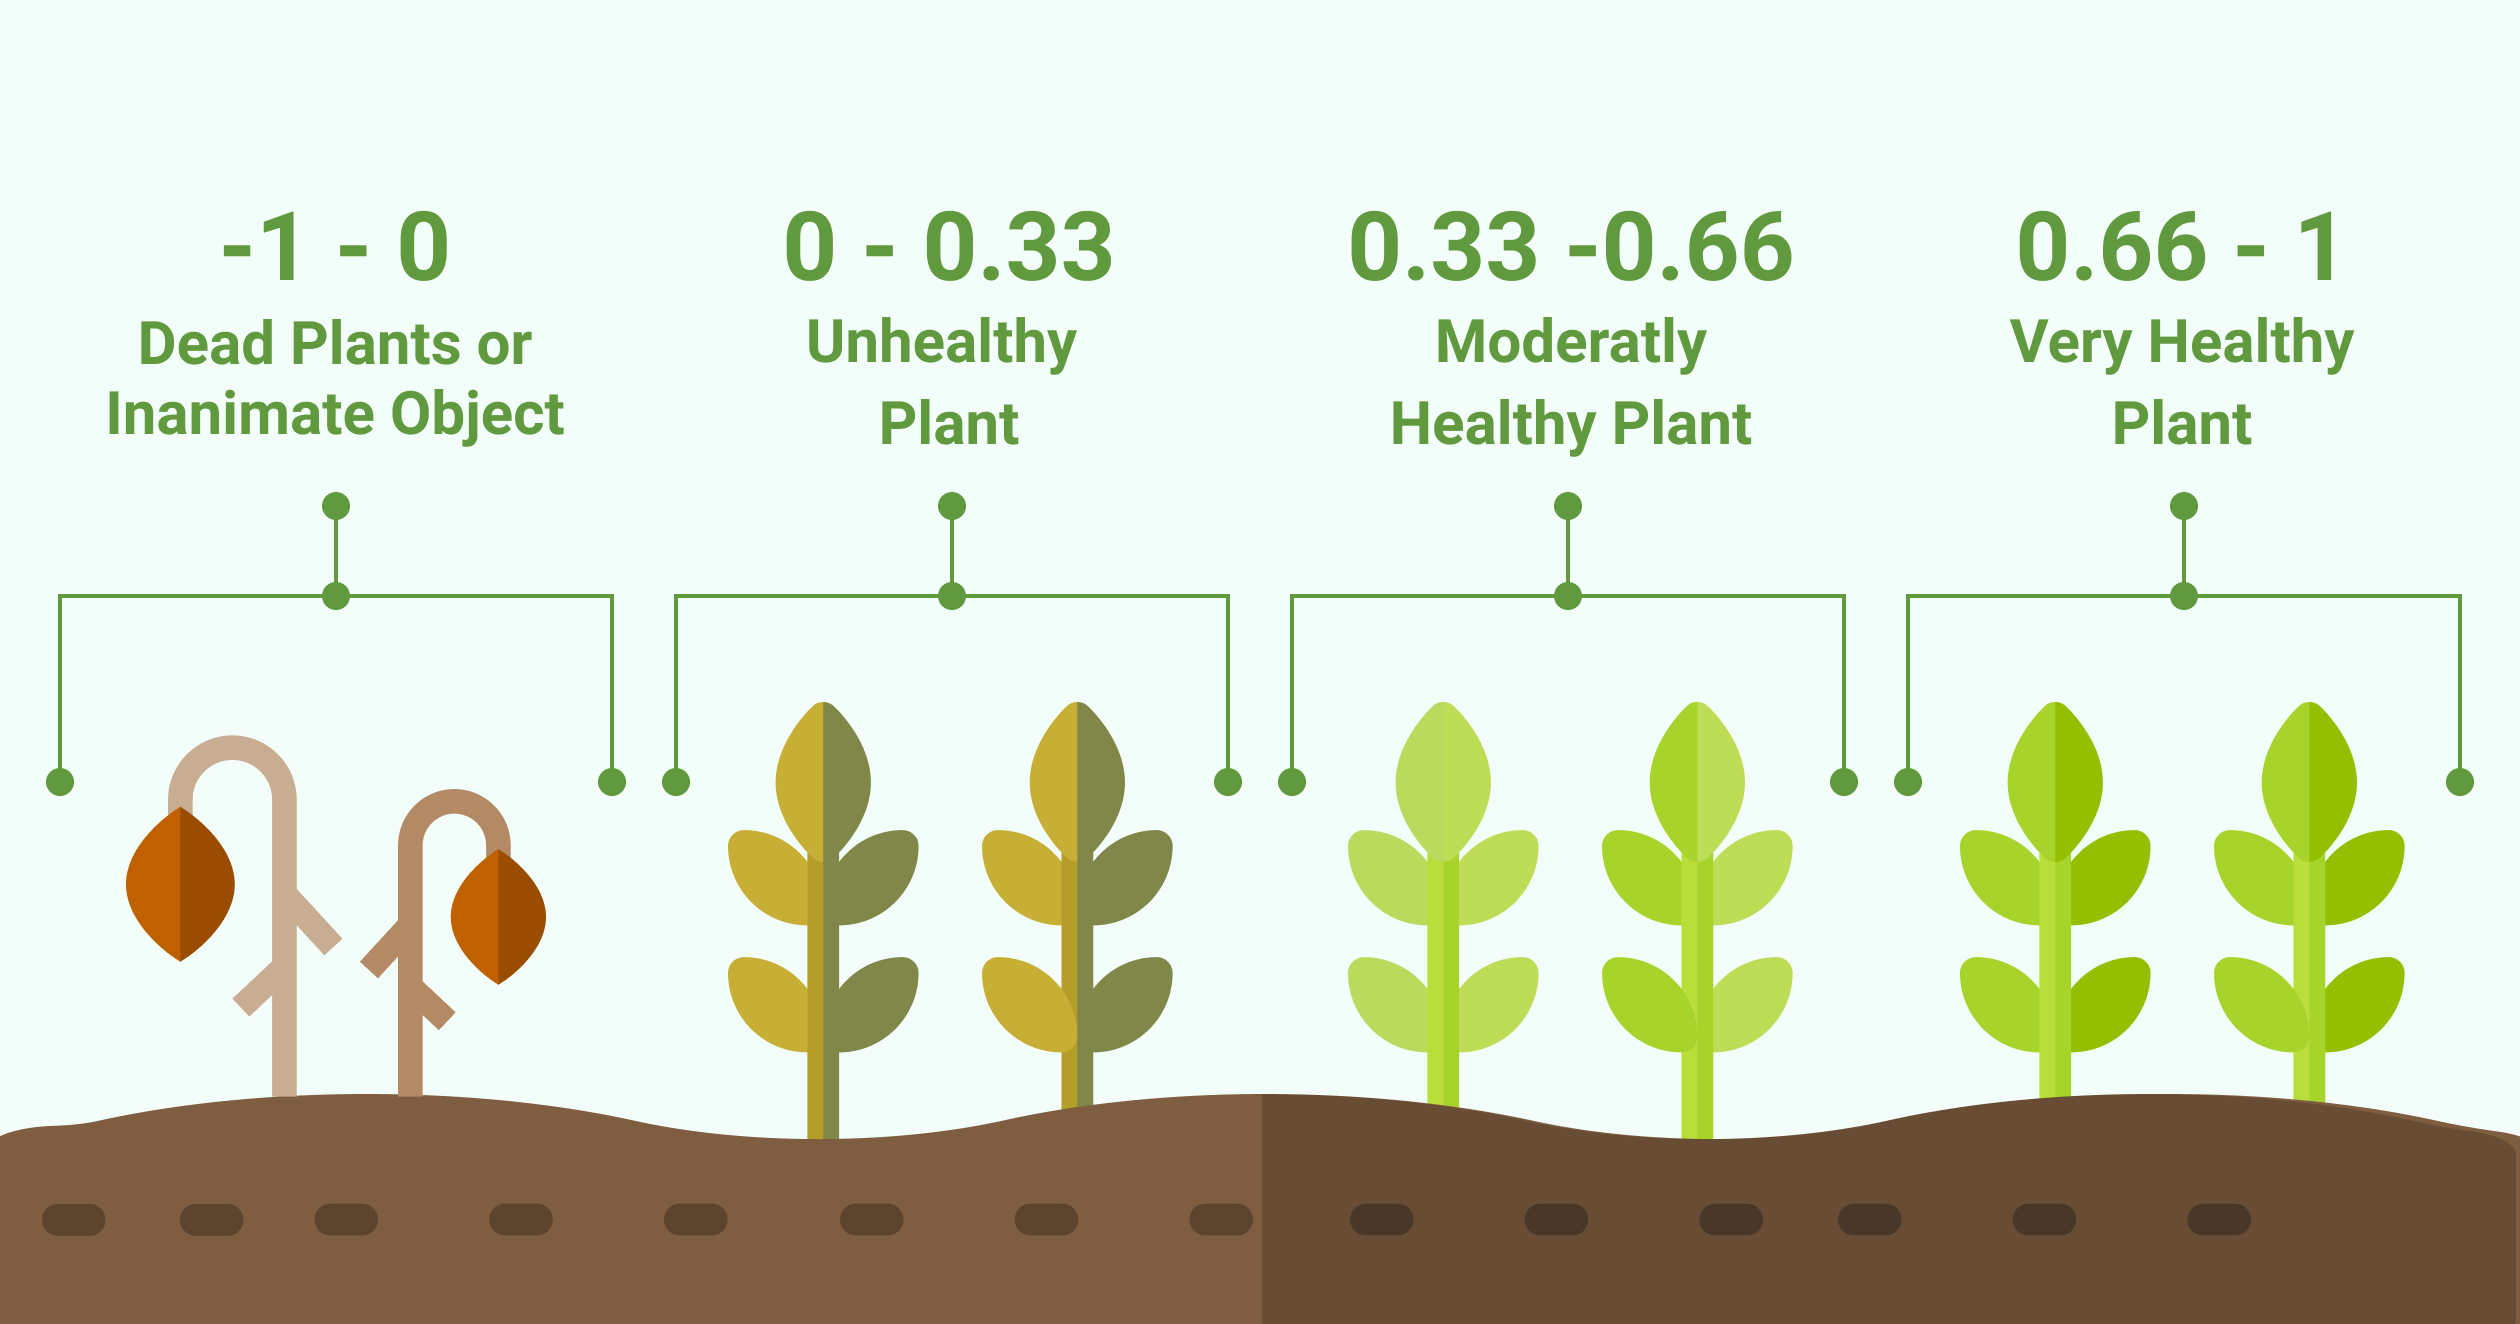 Figure 4 - How NDVI values relate to the health of the plant